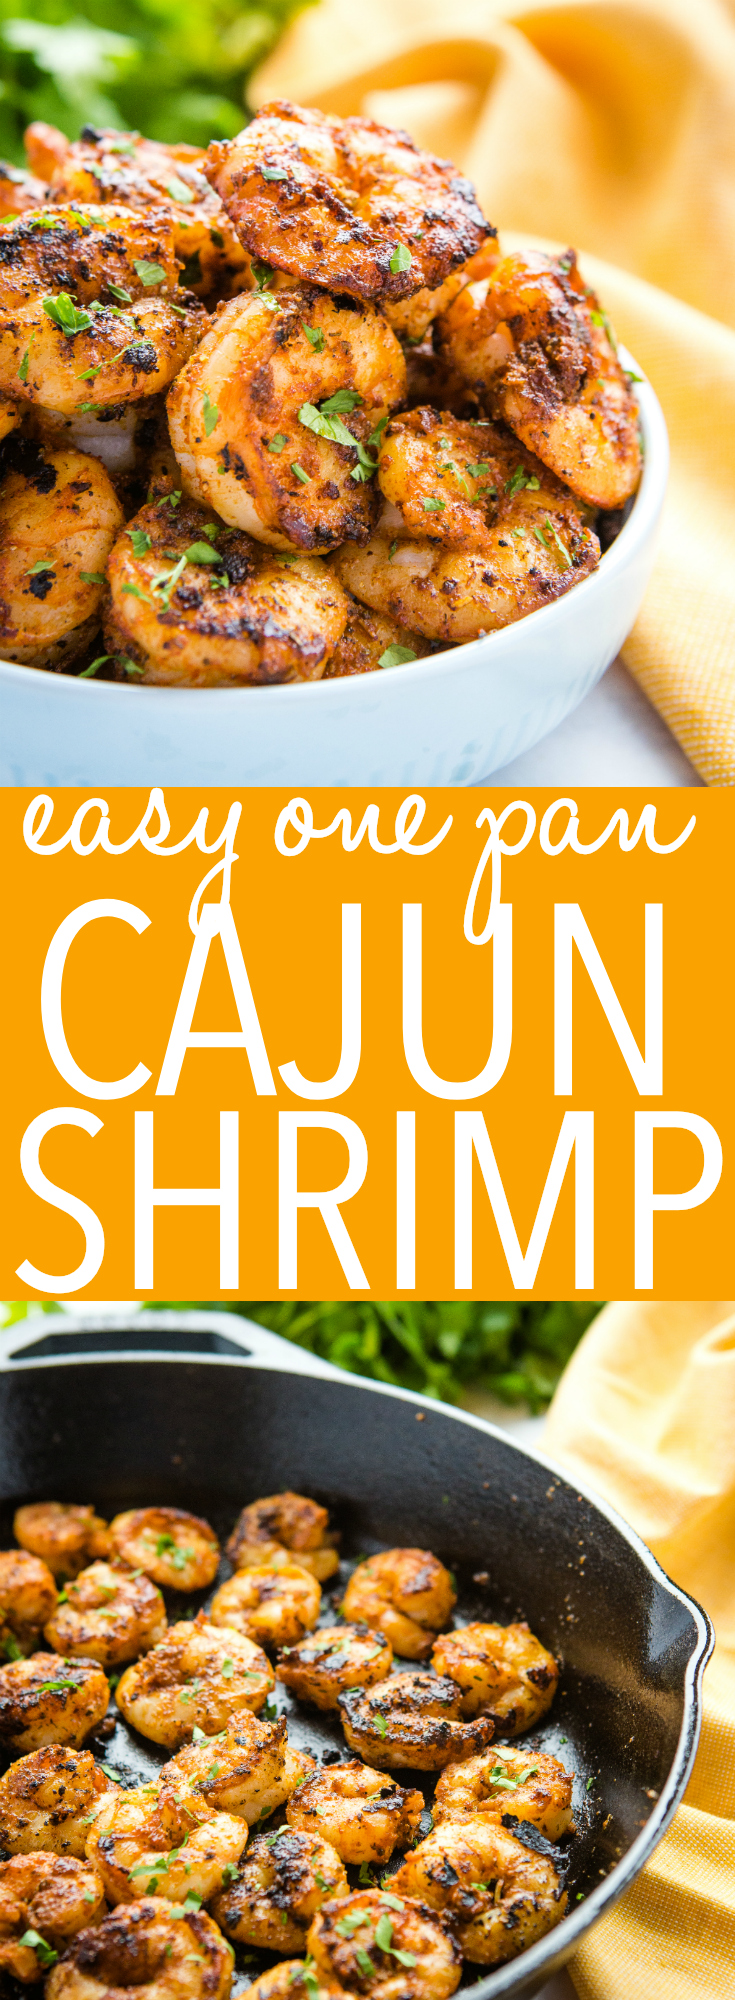 This Easy One Pan Cajun Shrimp is the perfect way to enjoy your favourite seafood! It's so spicy and flavourful, and it's easy to make in just one pan! Recipe from thebusybaker.ca! #cajun #shrimp #spicy #seafood #mild #protein #healthy #lowfat #spices #spicemix #seasoningblend via @busybakerblog